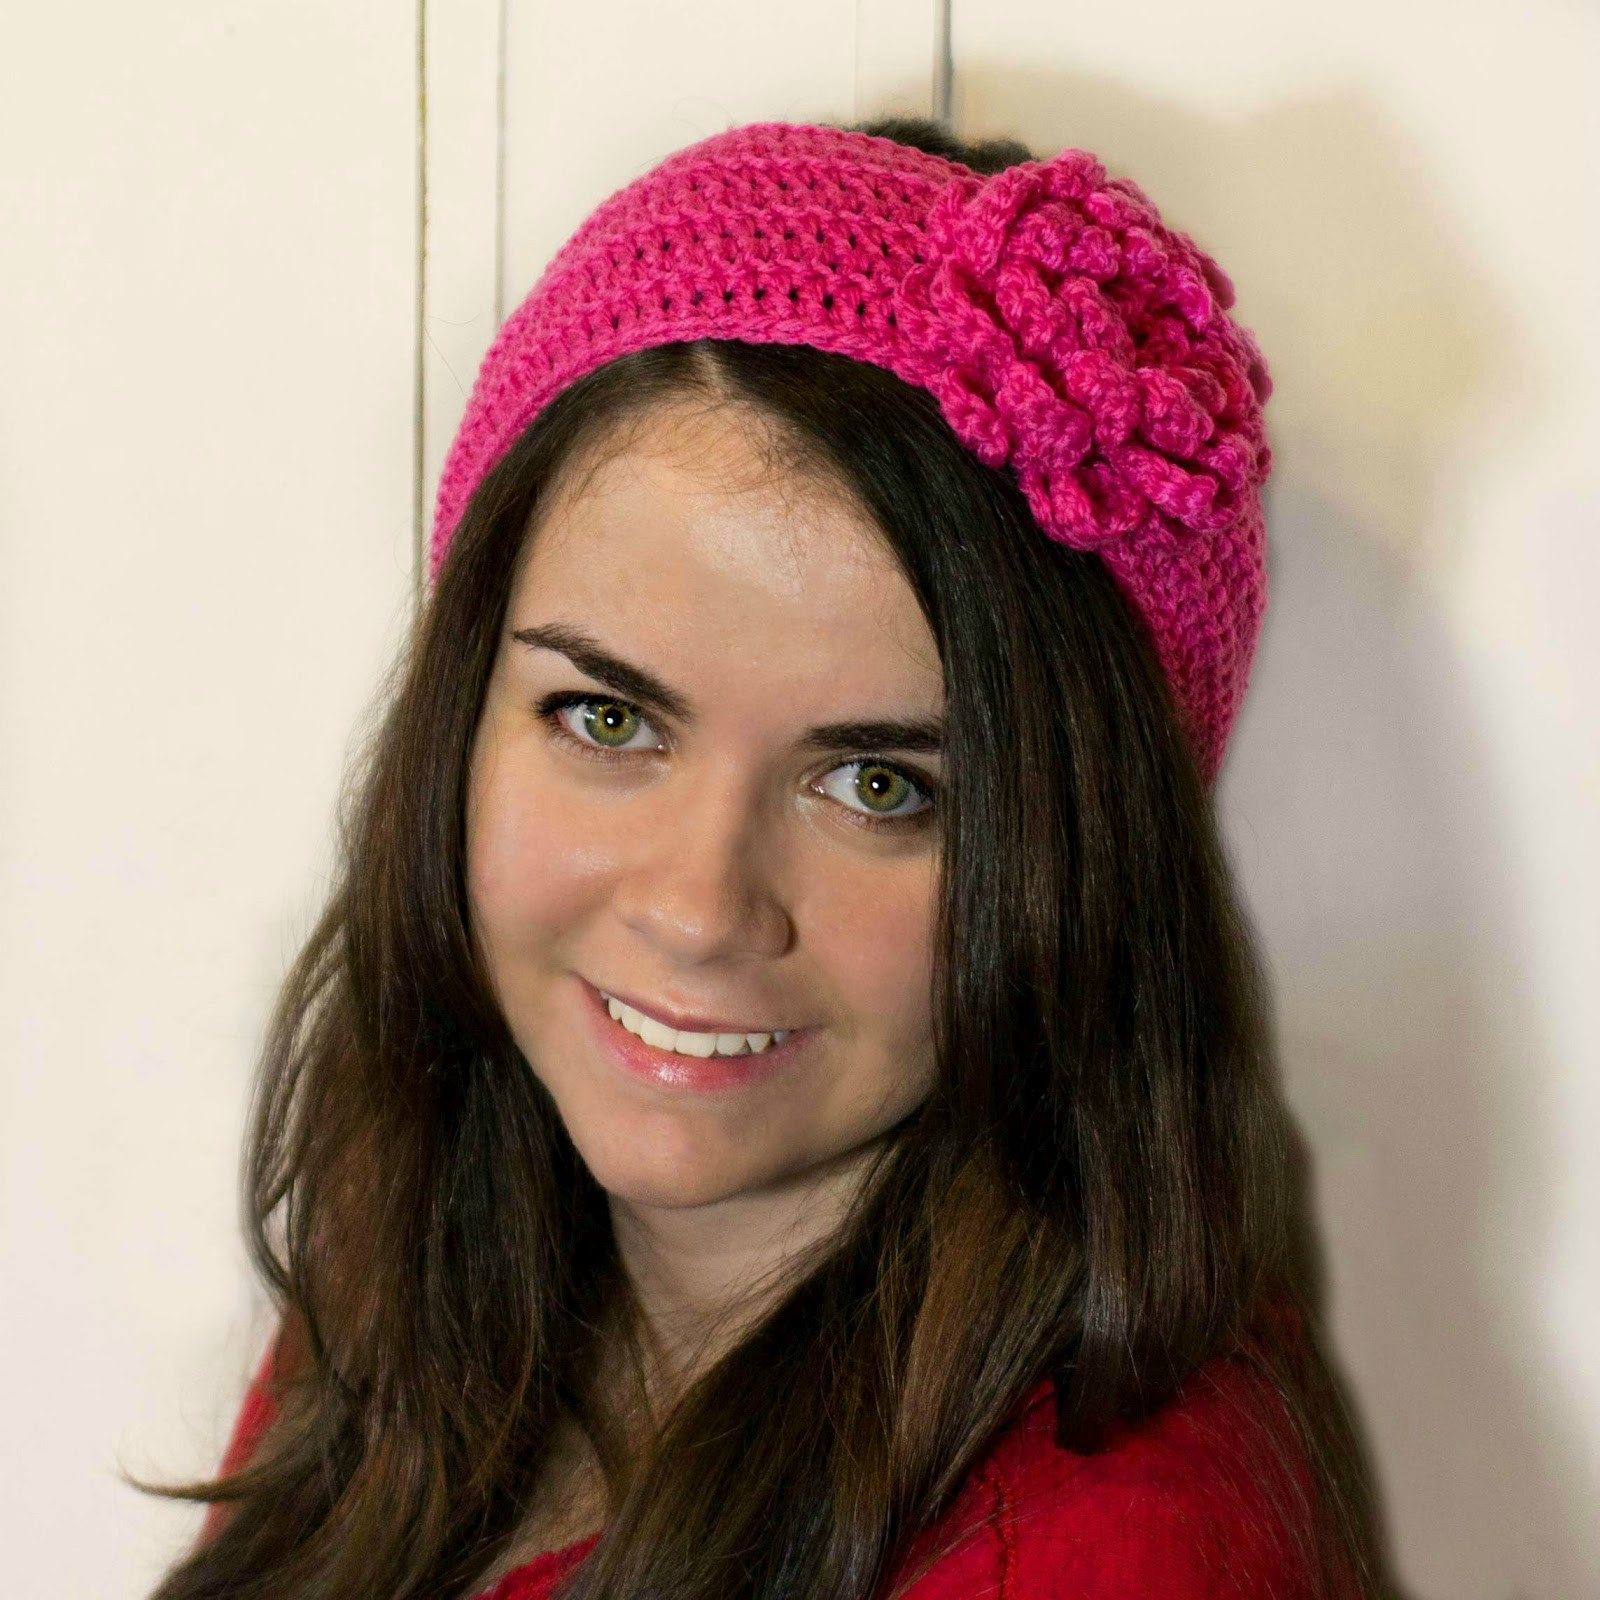 Unique Cozy Colorful Crochet Headband Designs for Young Girls Crochet Patterns for Headbands Of Lovely 49 Ideas Crochet Patterns for Headbands